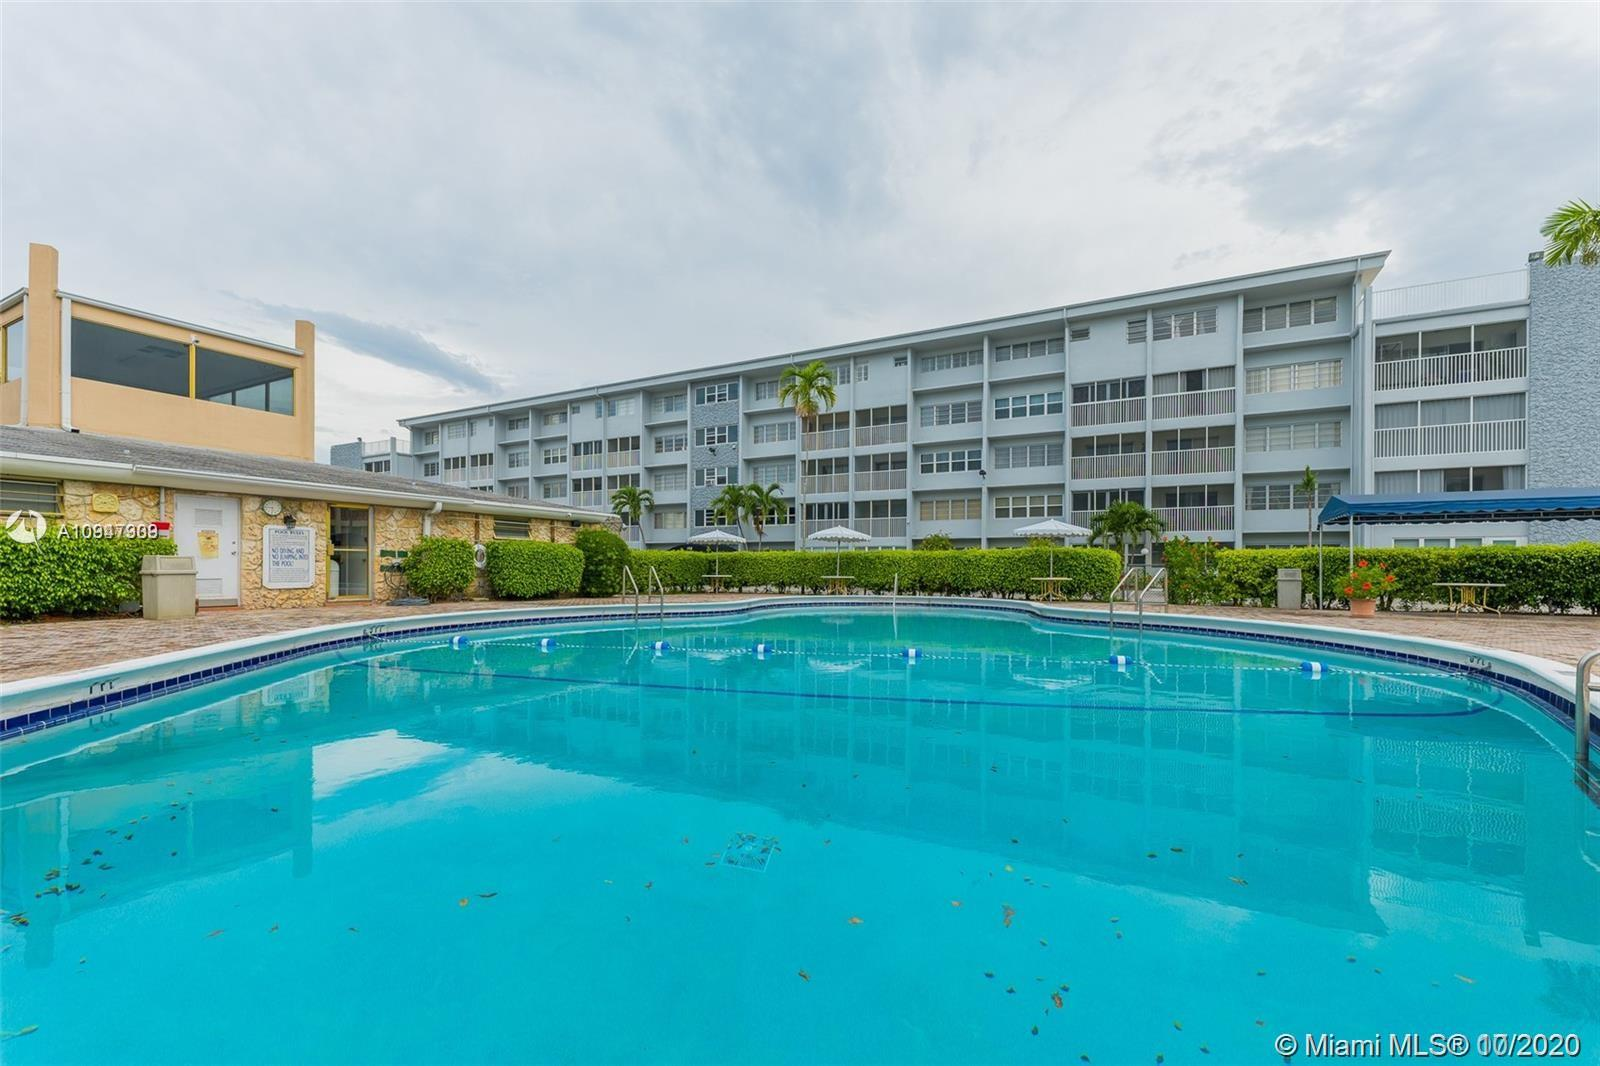 215 SE 3rd Ave # 502B, Hallandale Beach, Florida 33009, 3 Bedrooms Bedrooms, ,2 BathroomsBathrooms,Residential,For Sale,215 SE 3rd Ave # 502B,A10947909